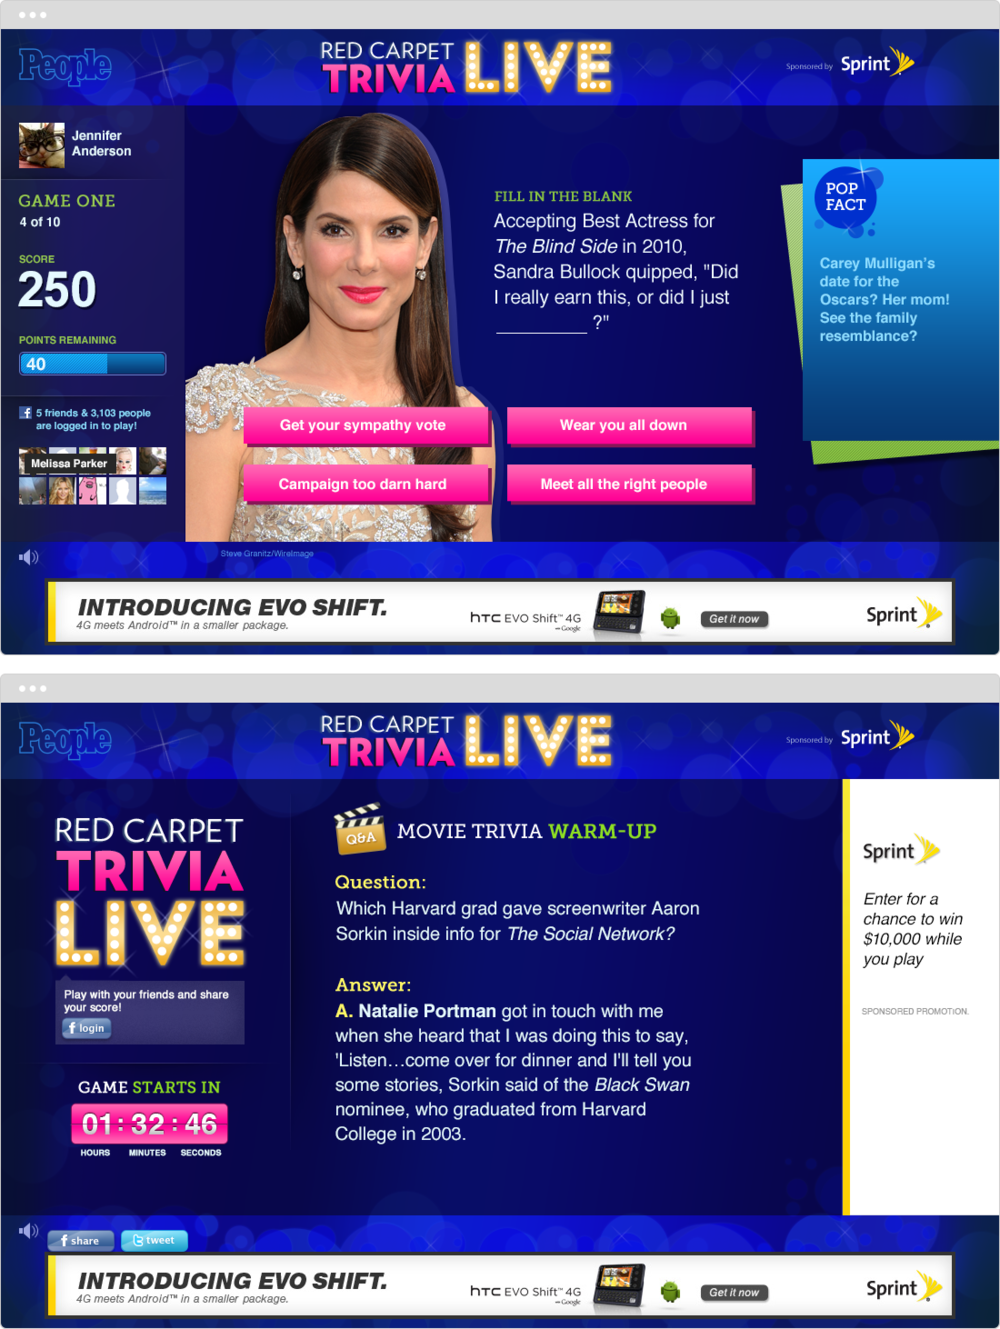 People    PROJECT   Red Carpet Trivia Live    WORK  UX Visual Design   DESCRIPTION  Reworked live trivia game to include Facebook integration. Designed new look & feel, logo, and updated user interface.